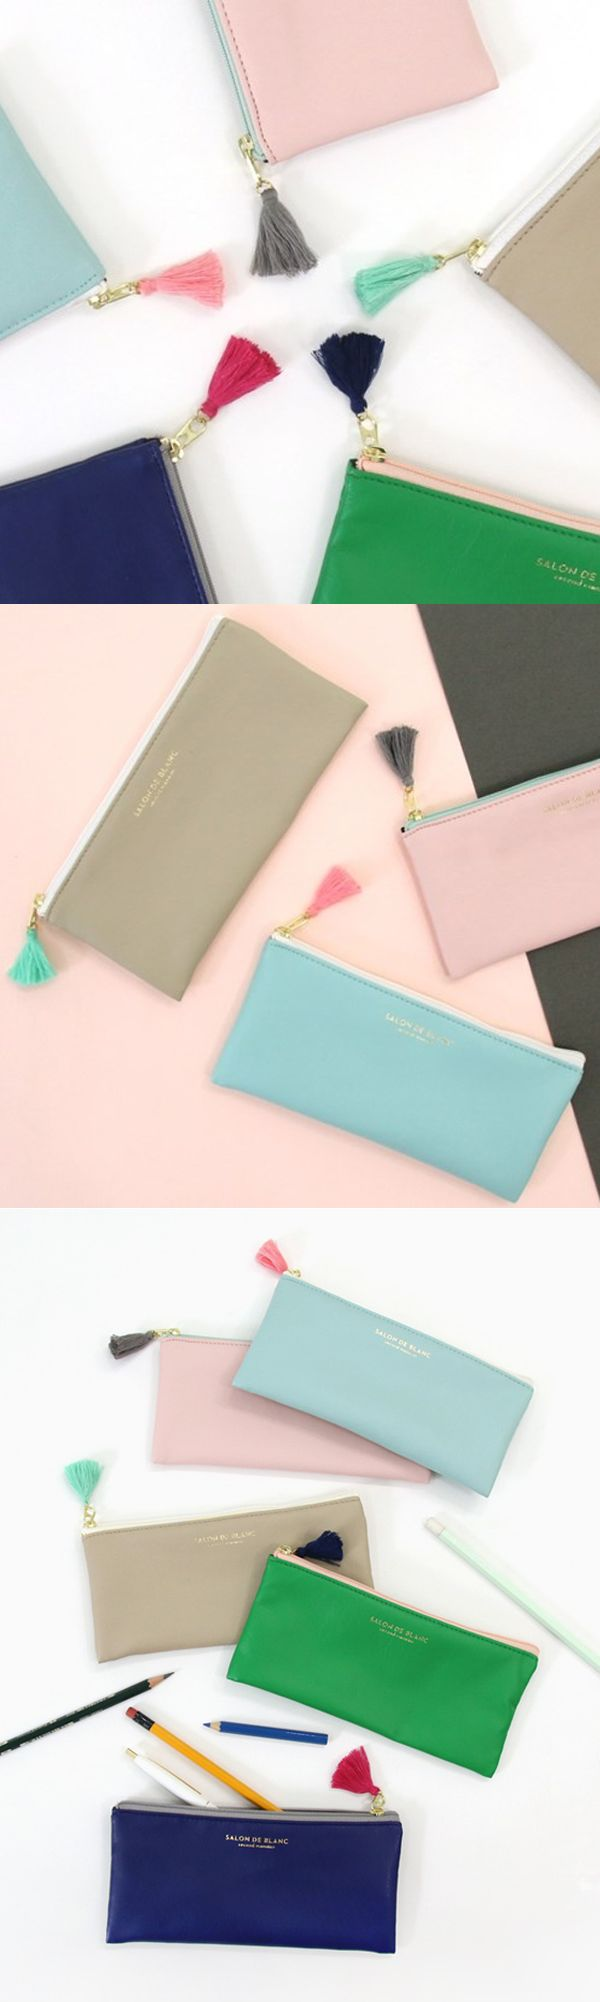 When fancy, practical and cute meet, you get the beautiful Salon De Blanc Tassel Pen Case! Meet the pen case that acts as a make up and phone holder too! There are 5 fashionable and vogue colors, and have beautifully contrasting inside lining colors. Each pen case comes with a different colored tassel, and it can hold up to 15 pens! What's the wait? Check it out now!